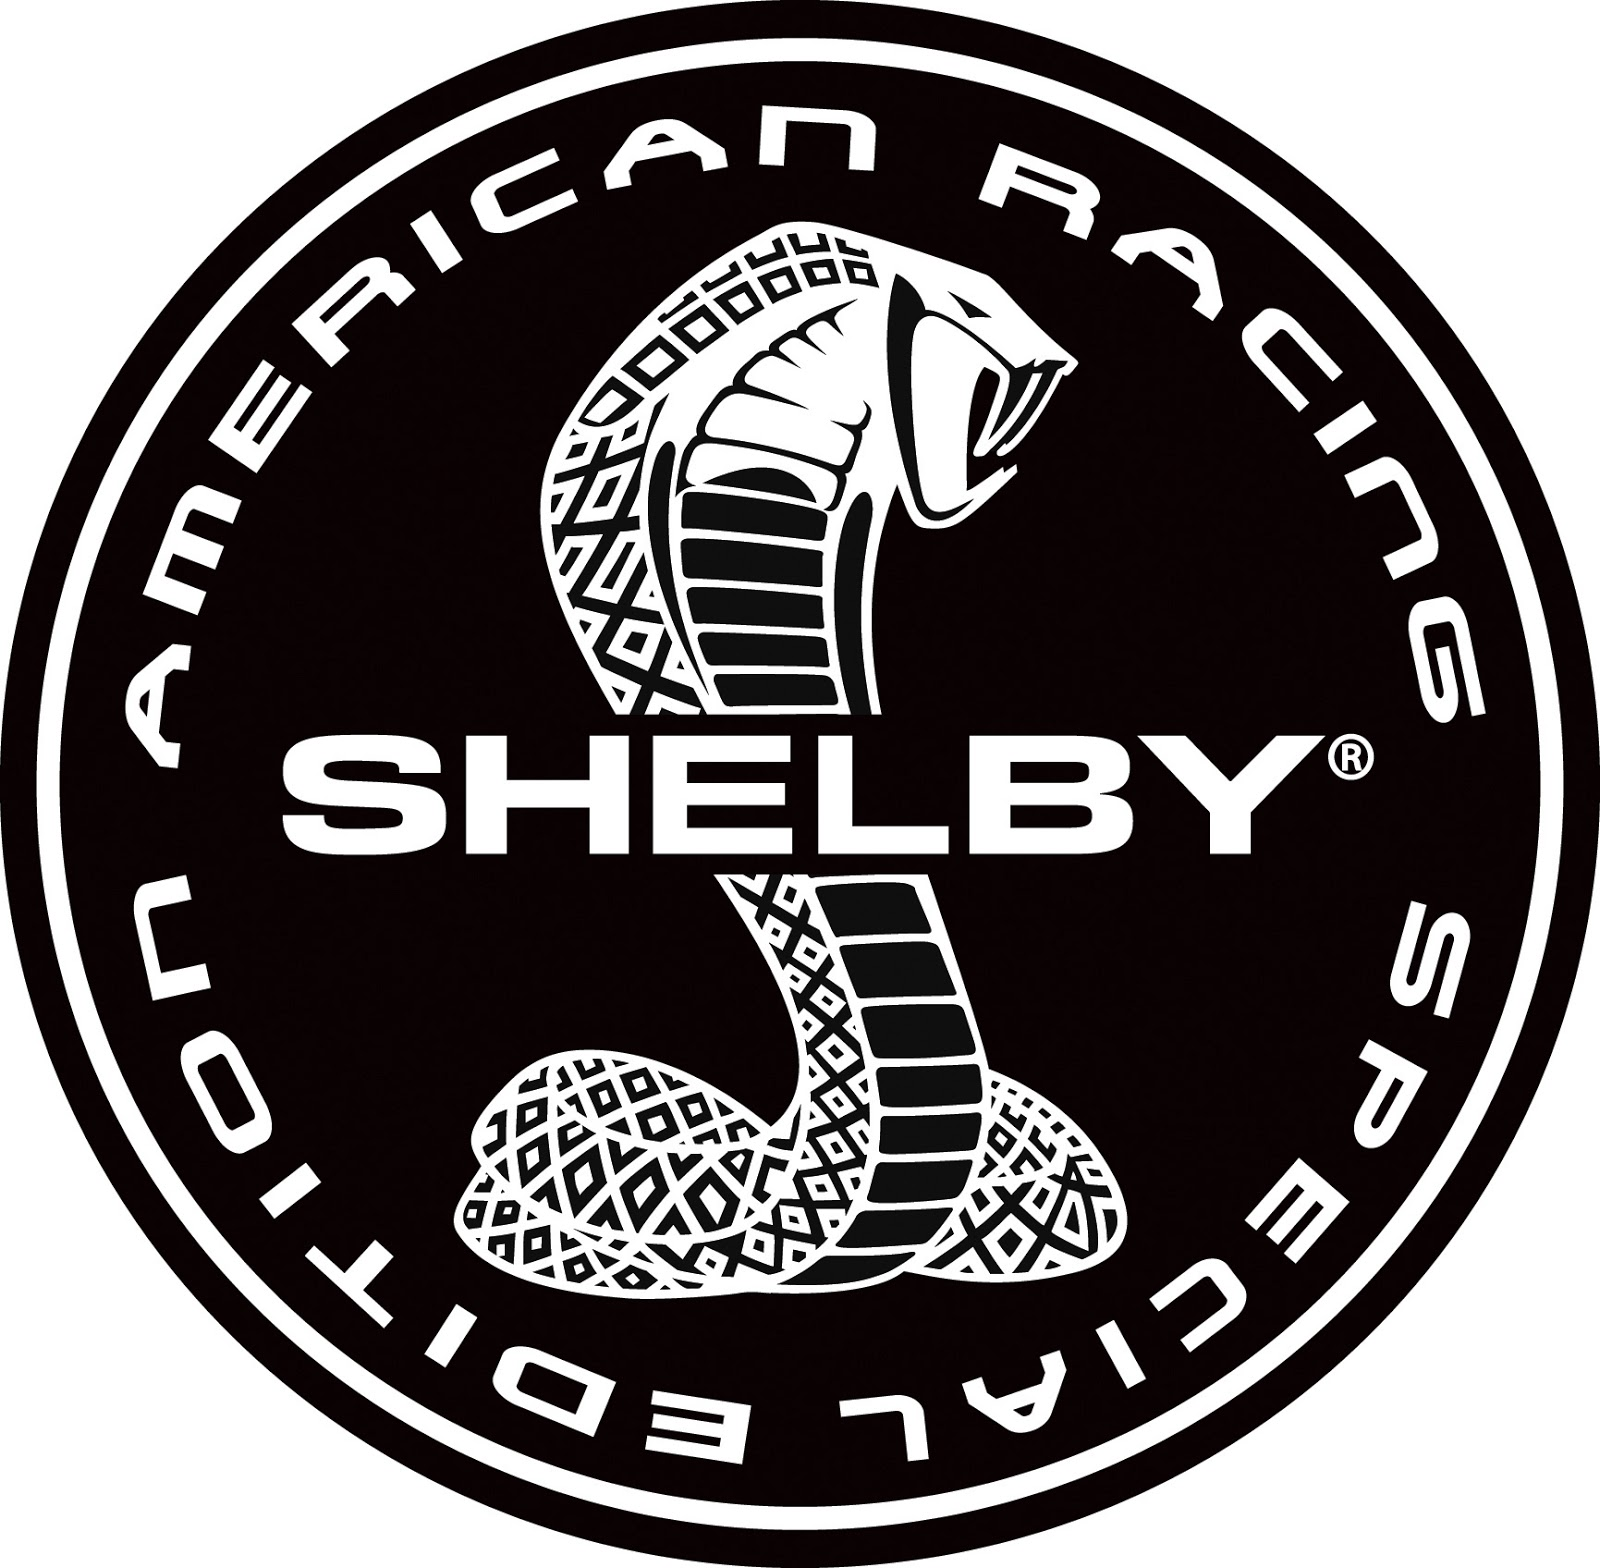 ford mustang shelby logo hd image